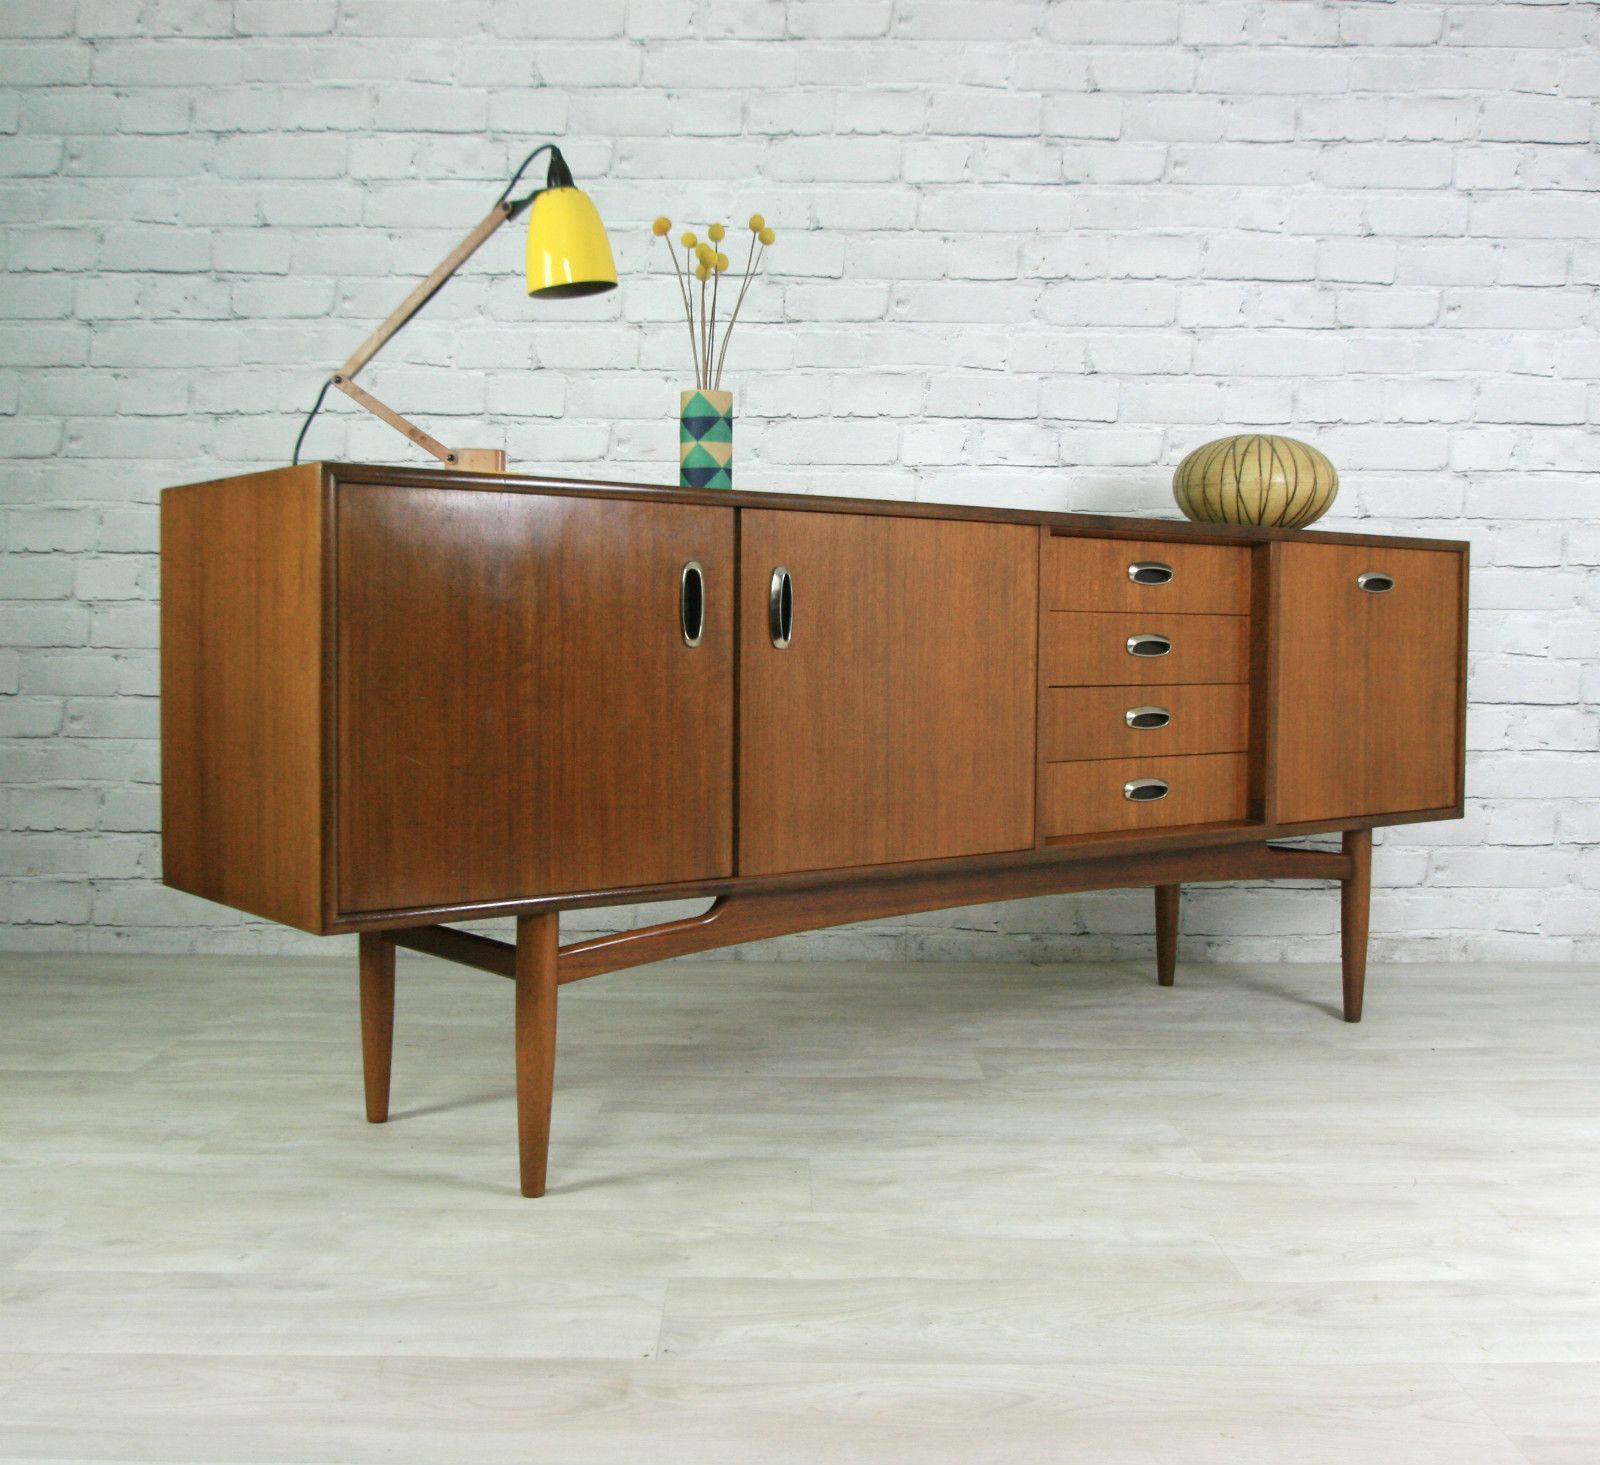 G plan retro vintage teak mid century danish style for Retro furniture